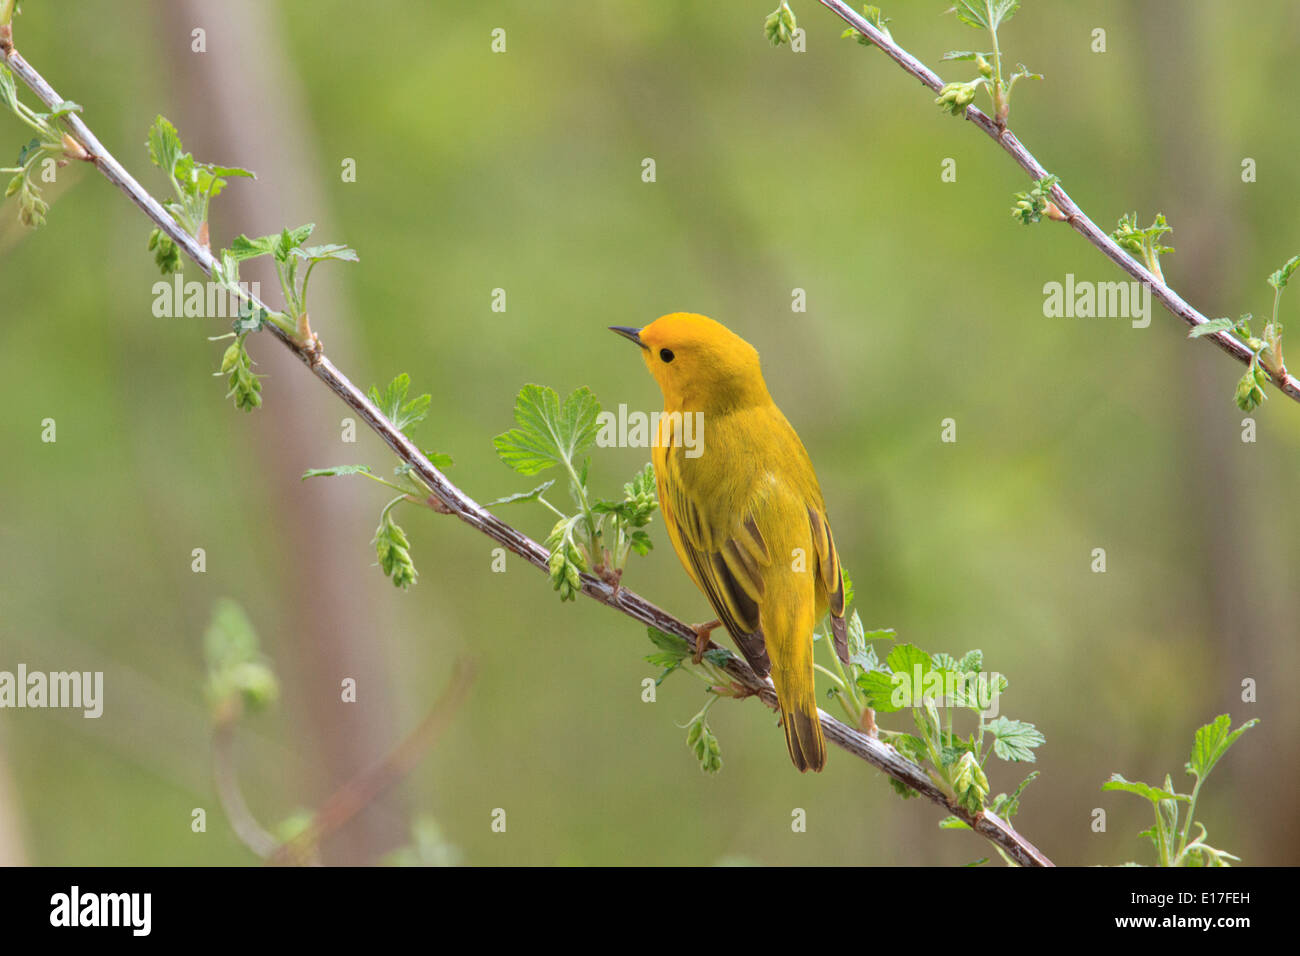 Yellow warbler (Setophaga petechia) in full breeding plumage at Magee Marsh during the SPring migration. - Stock Image